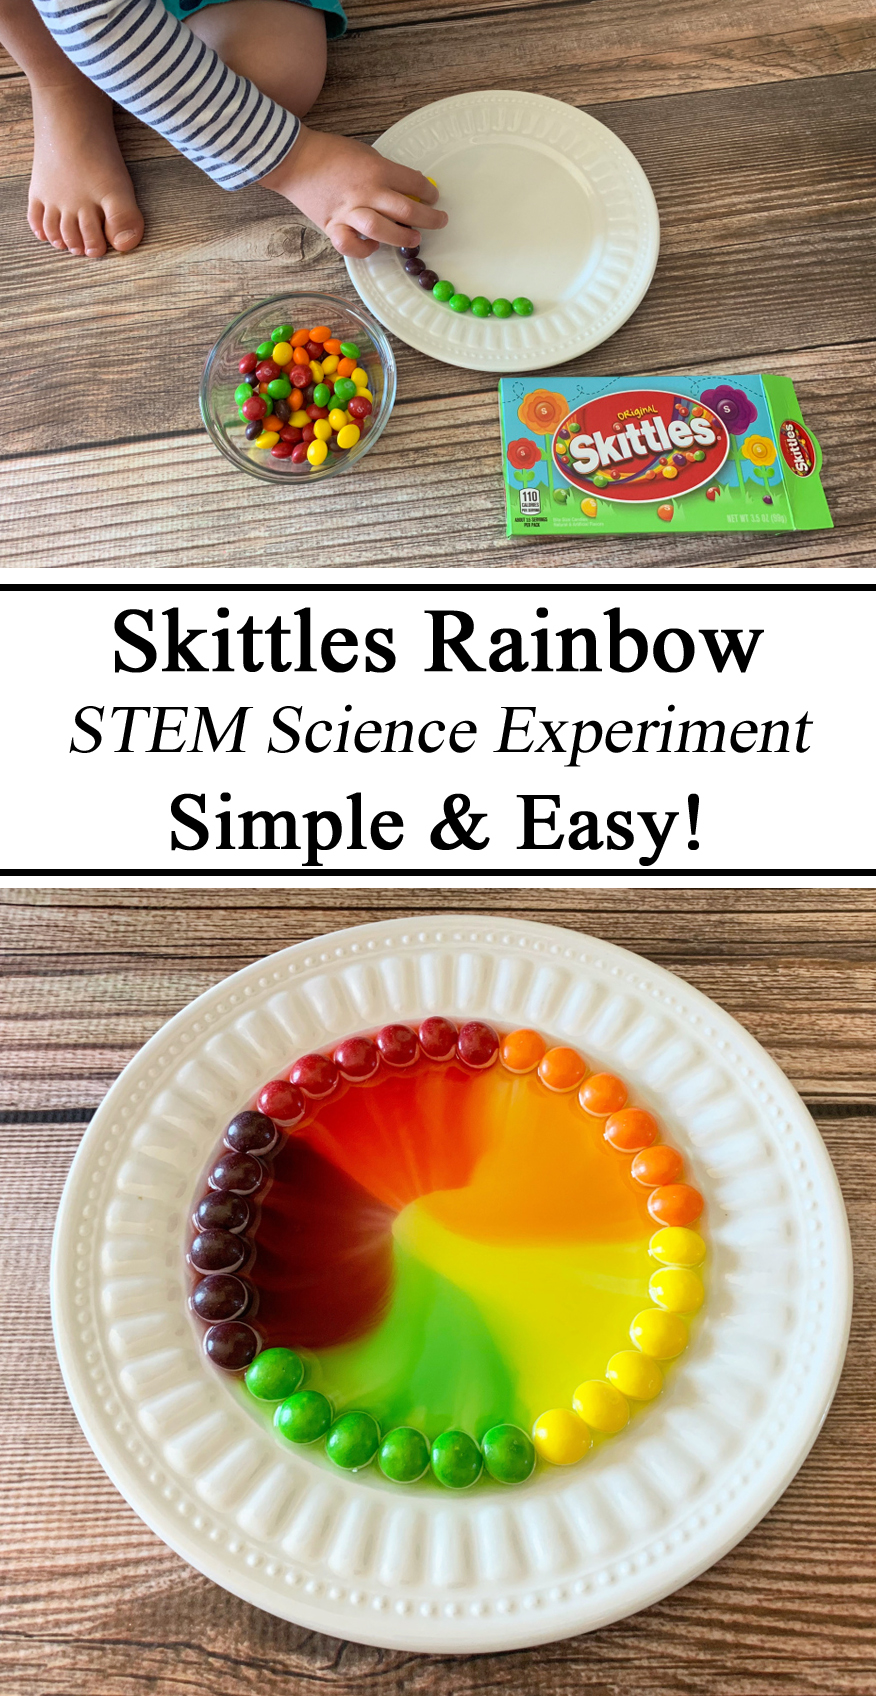 Homeschool, Educational, Homeschooling, STEM, STEAM, Education, Preschool, Science Experiments, Challenge, For Kids, Kindergarten, Preschool, PreK, Hands on Learning, Rainbows, Unit, Learning Colors, Easy, St. Patrick's Day, Saint, Ireland Unit, #travelingthroughlearning